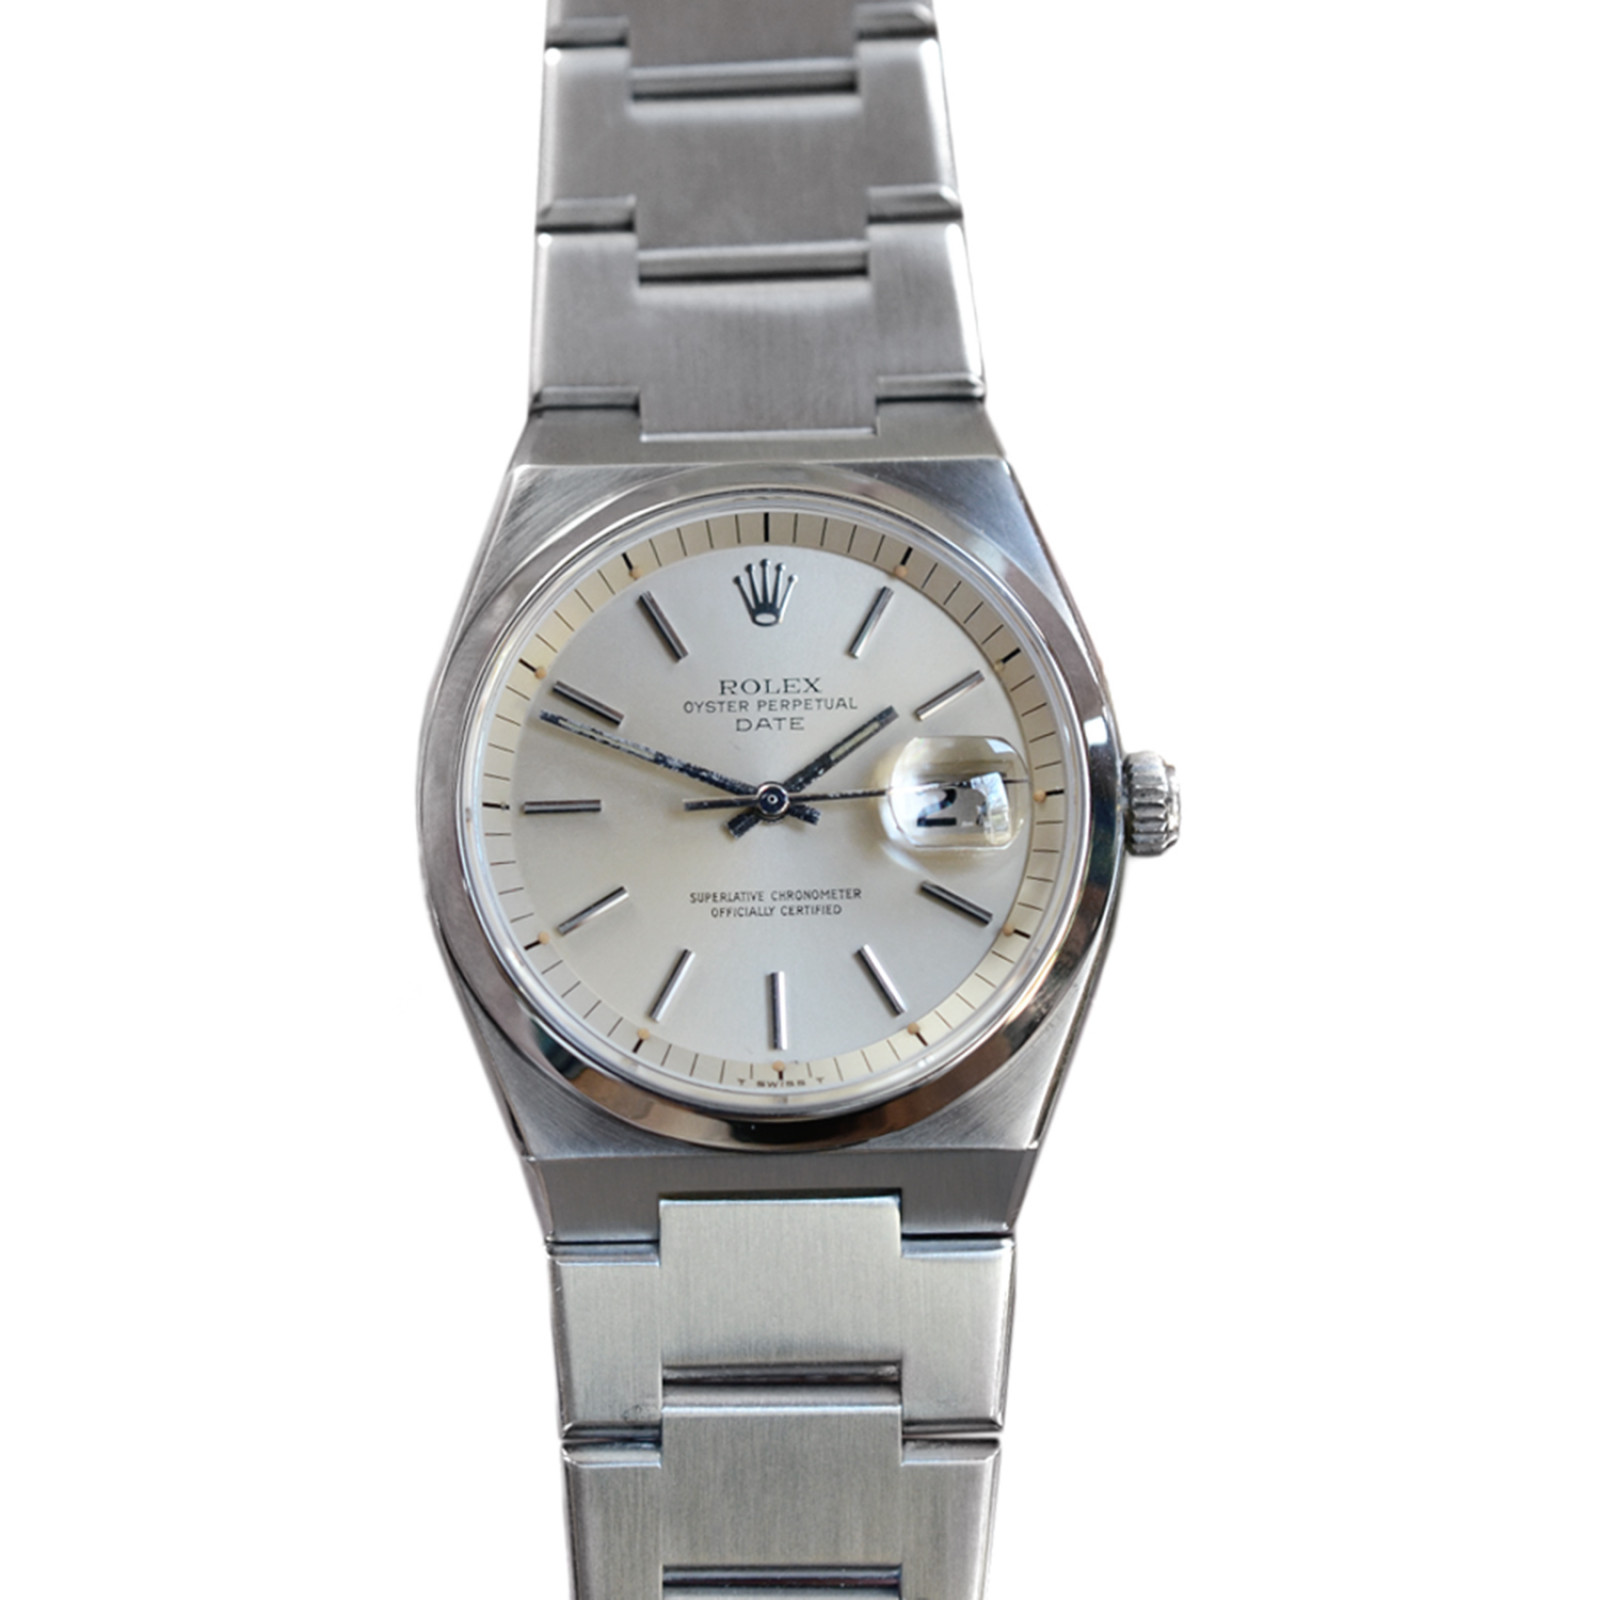 Pre-Owned Rolex Date 1530 with Silver Dial